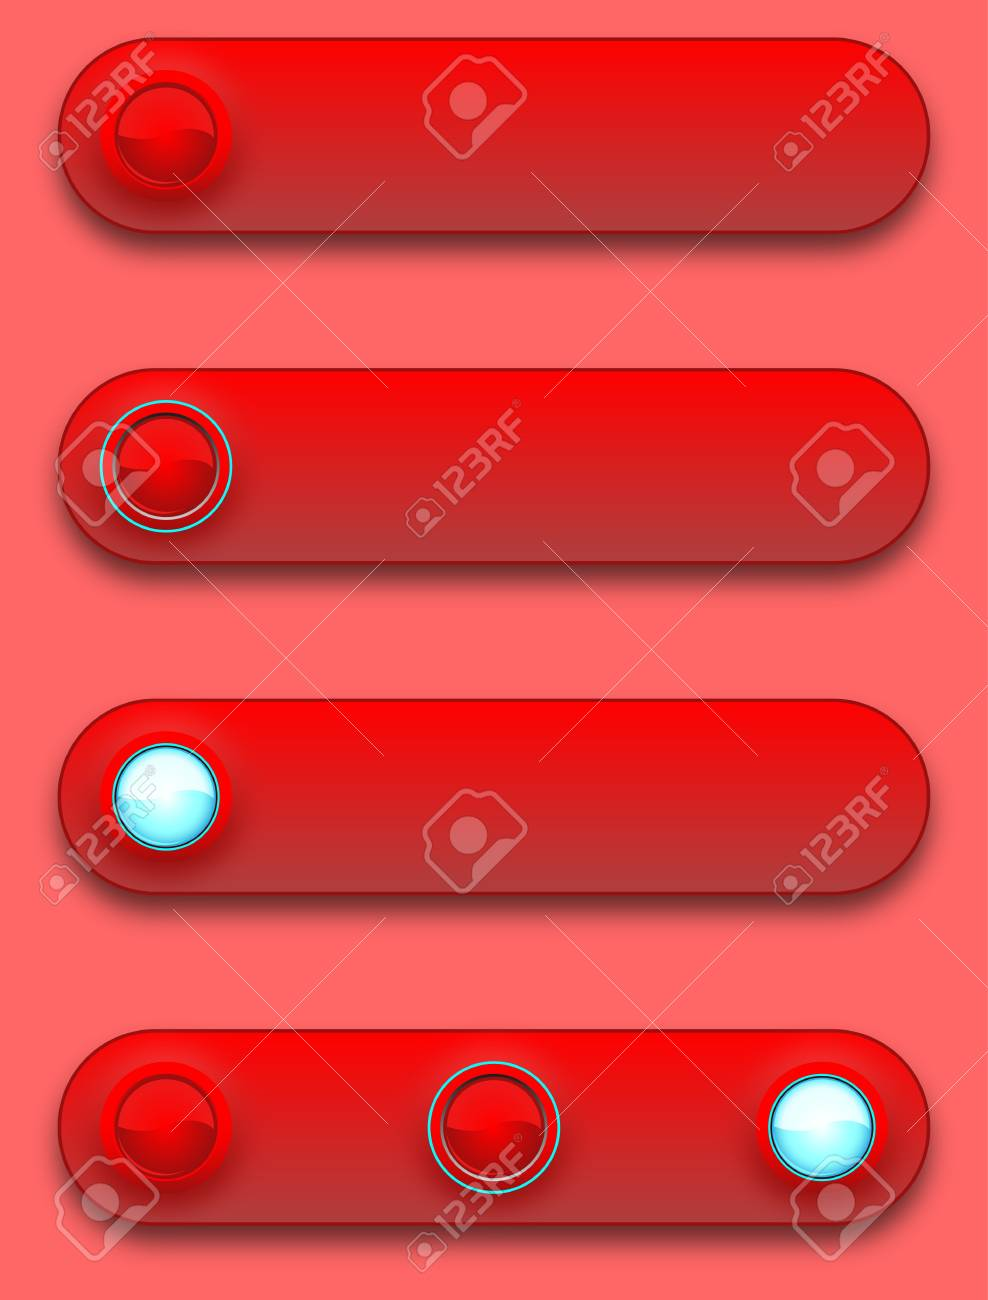 Long button, off, selected and pushed. Stock Vector - 12391675